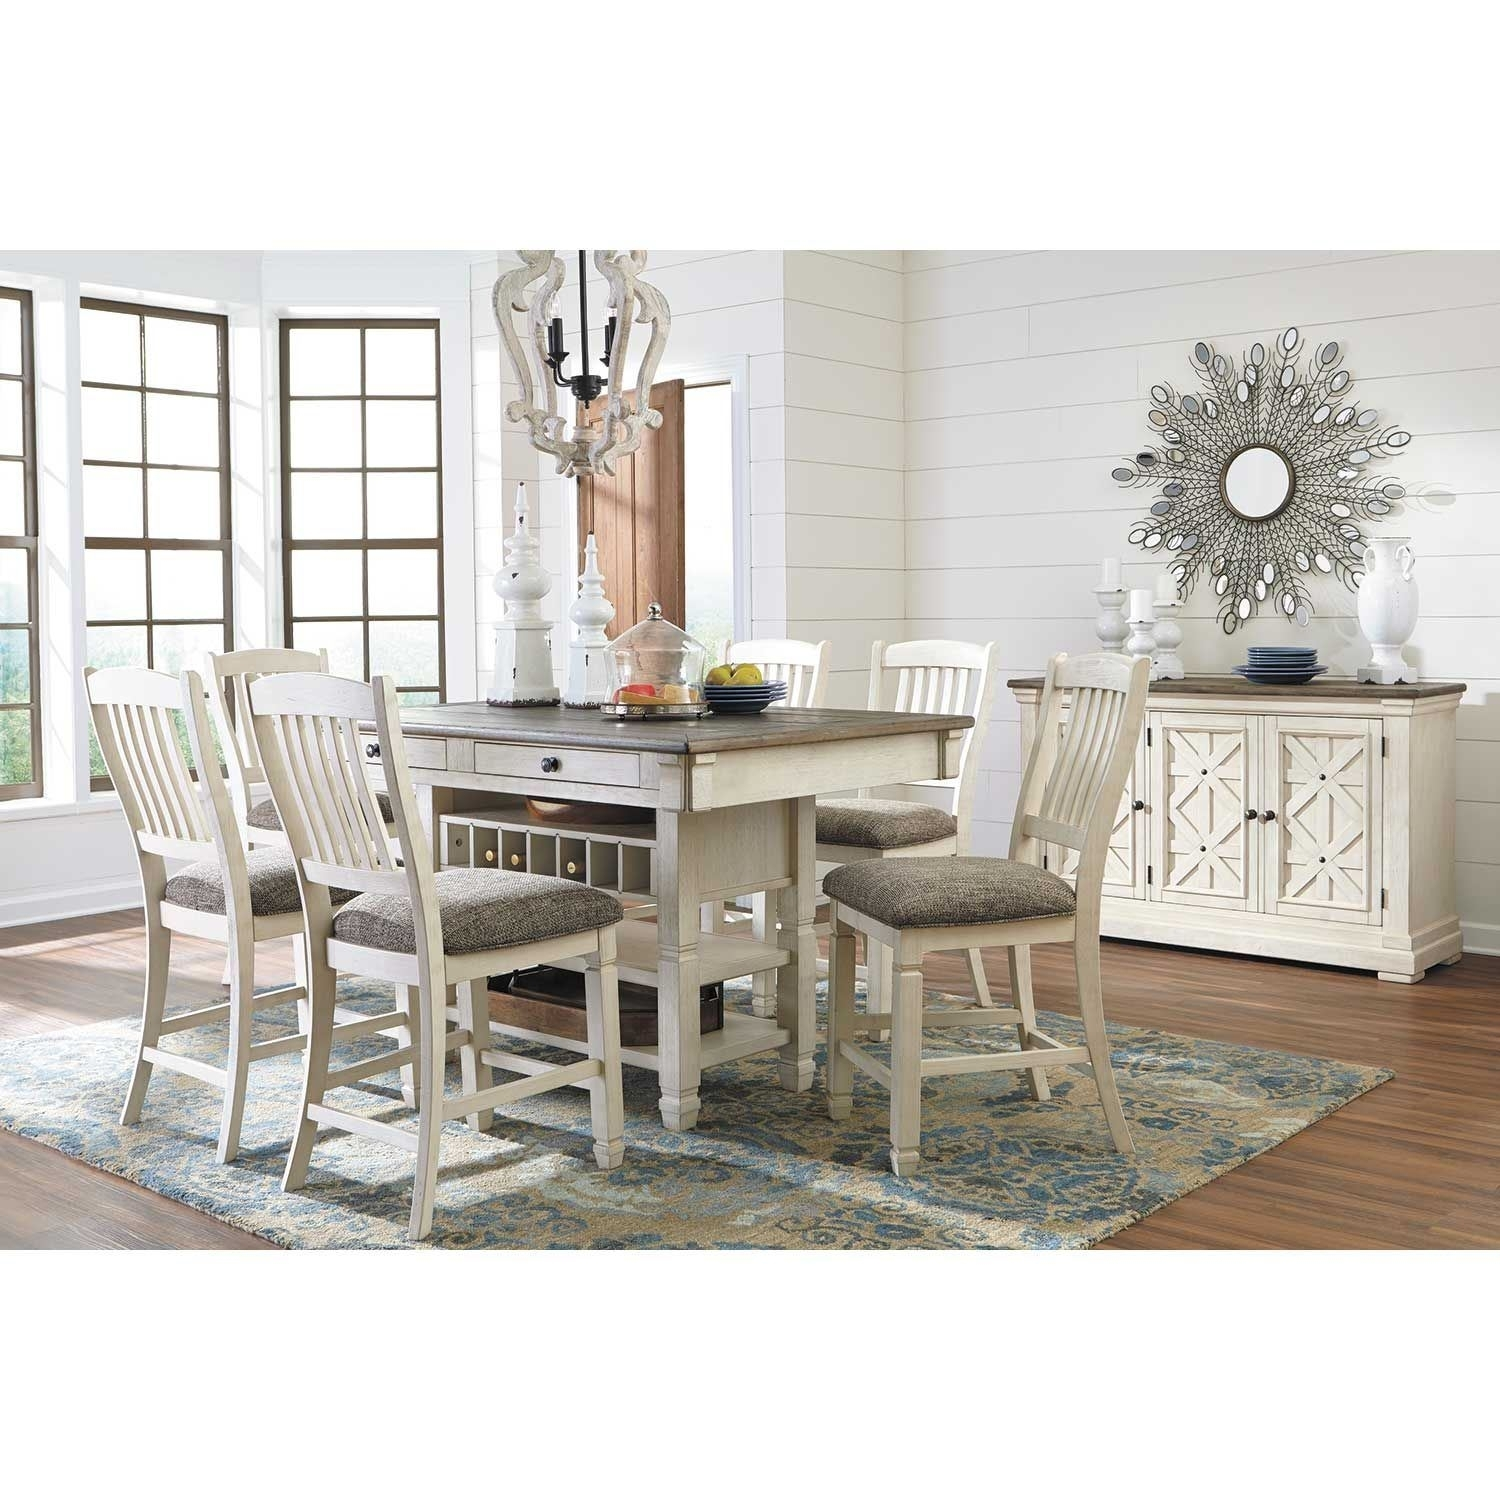 Bolanburg Counter Height Table D647 32 | Ashley Furniture | Afw Throughout Most Up To Date Market 6 Piece Dining Sets With Host And Side Chairs (Image 5 of 20)